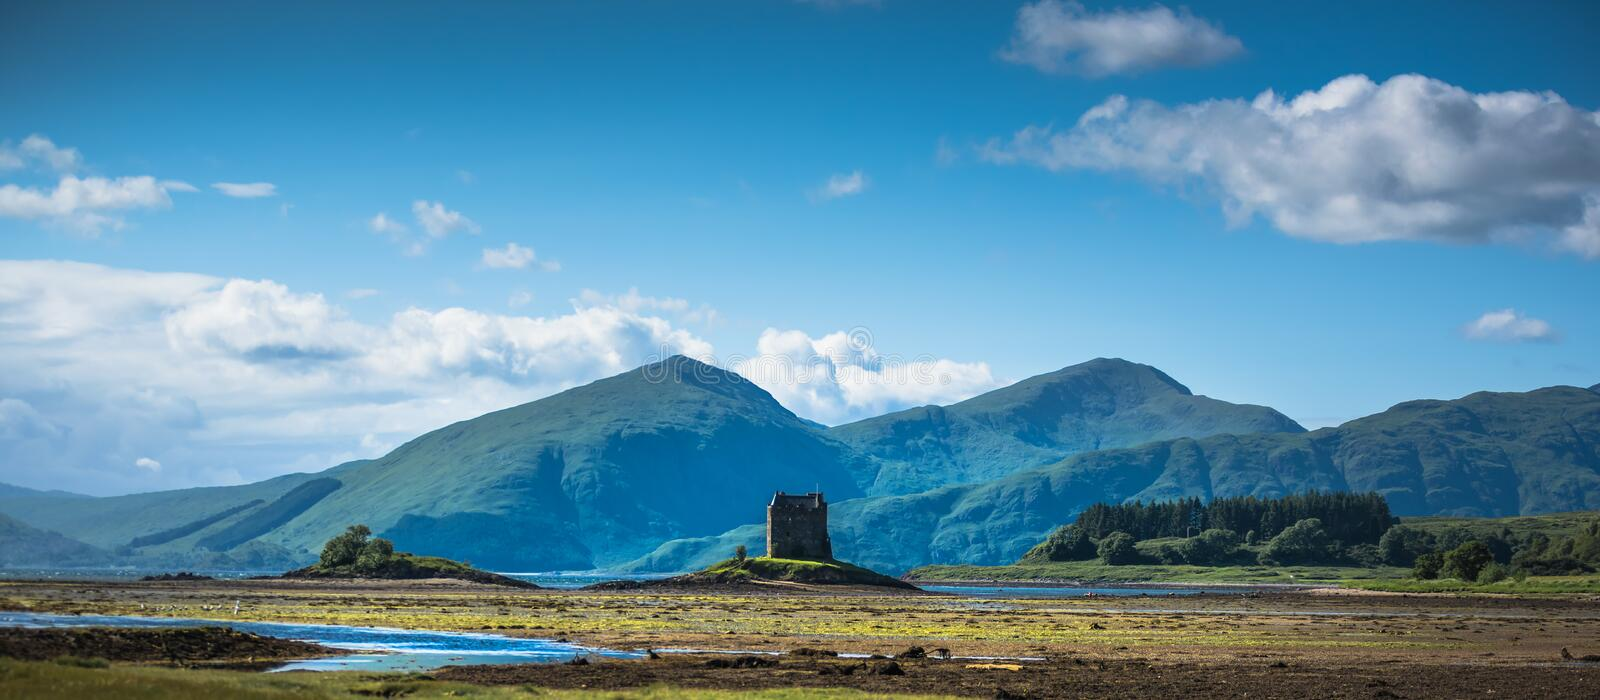 Castle on island - Castle Stalker - a picturesque castle surrounded by water located 25 miles north of Oban on the west coast. Of Scotland royalty free stock images